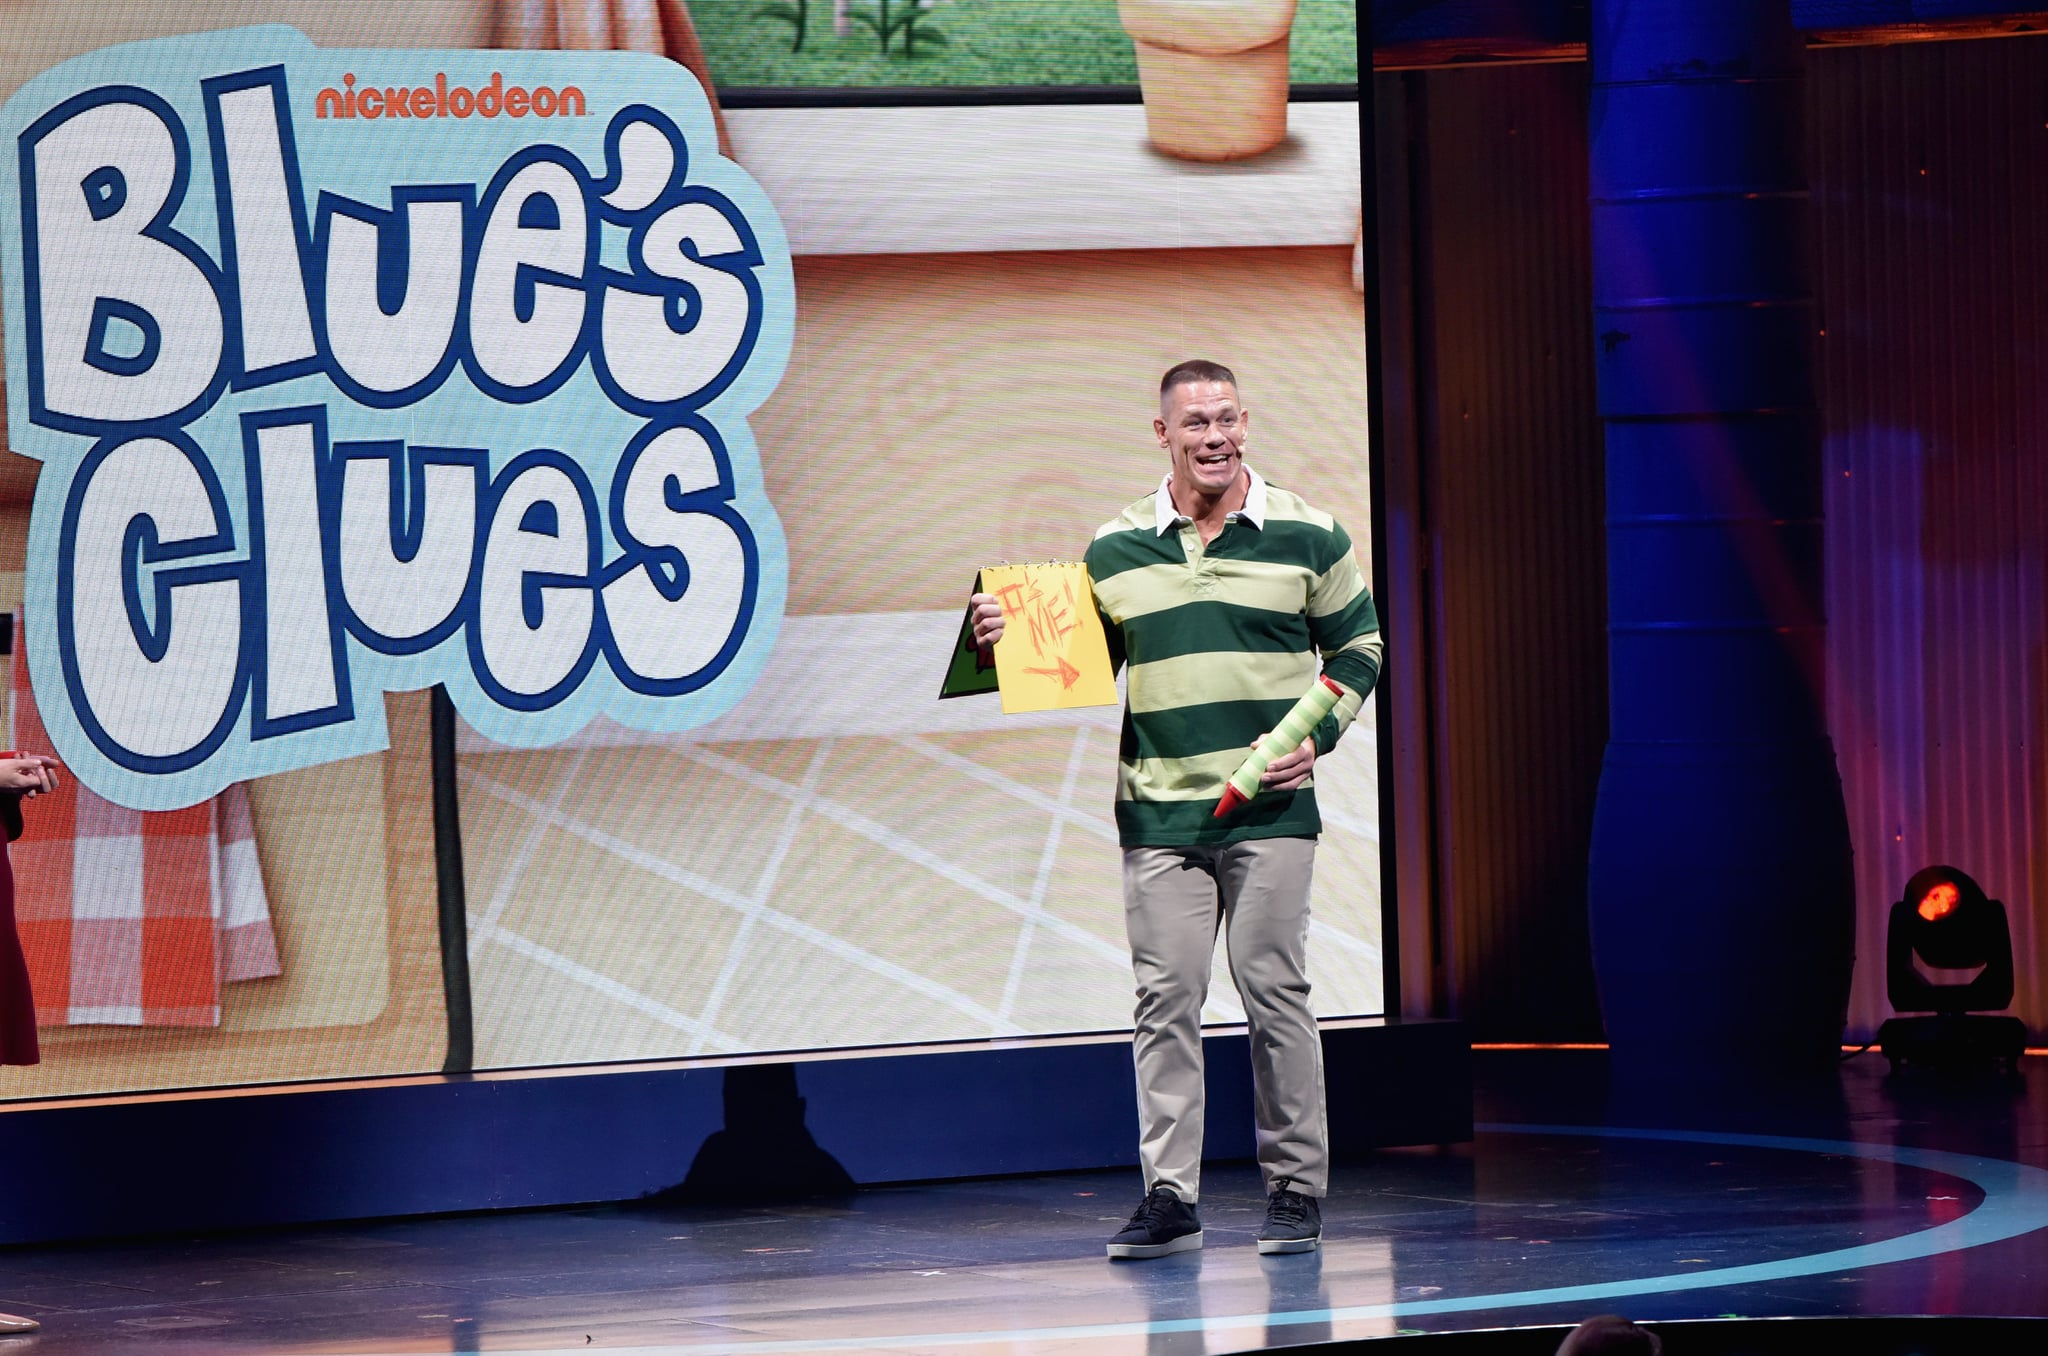 NEW YORK, NY - MARCH 06: John Cena speaks onstage at the Nickelodeon Upfront 2018 at Palace Theatre on March 6, 2018 in New York City. (Photo by Bryan Bedder/Getty Images for New Games Productions Inc. )